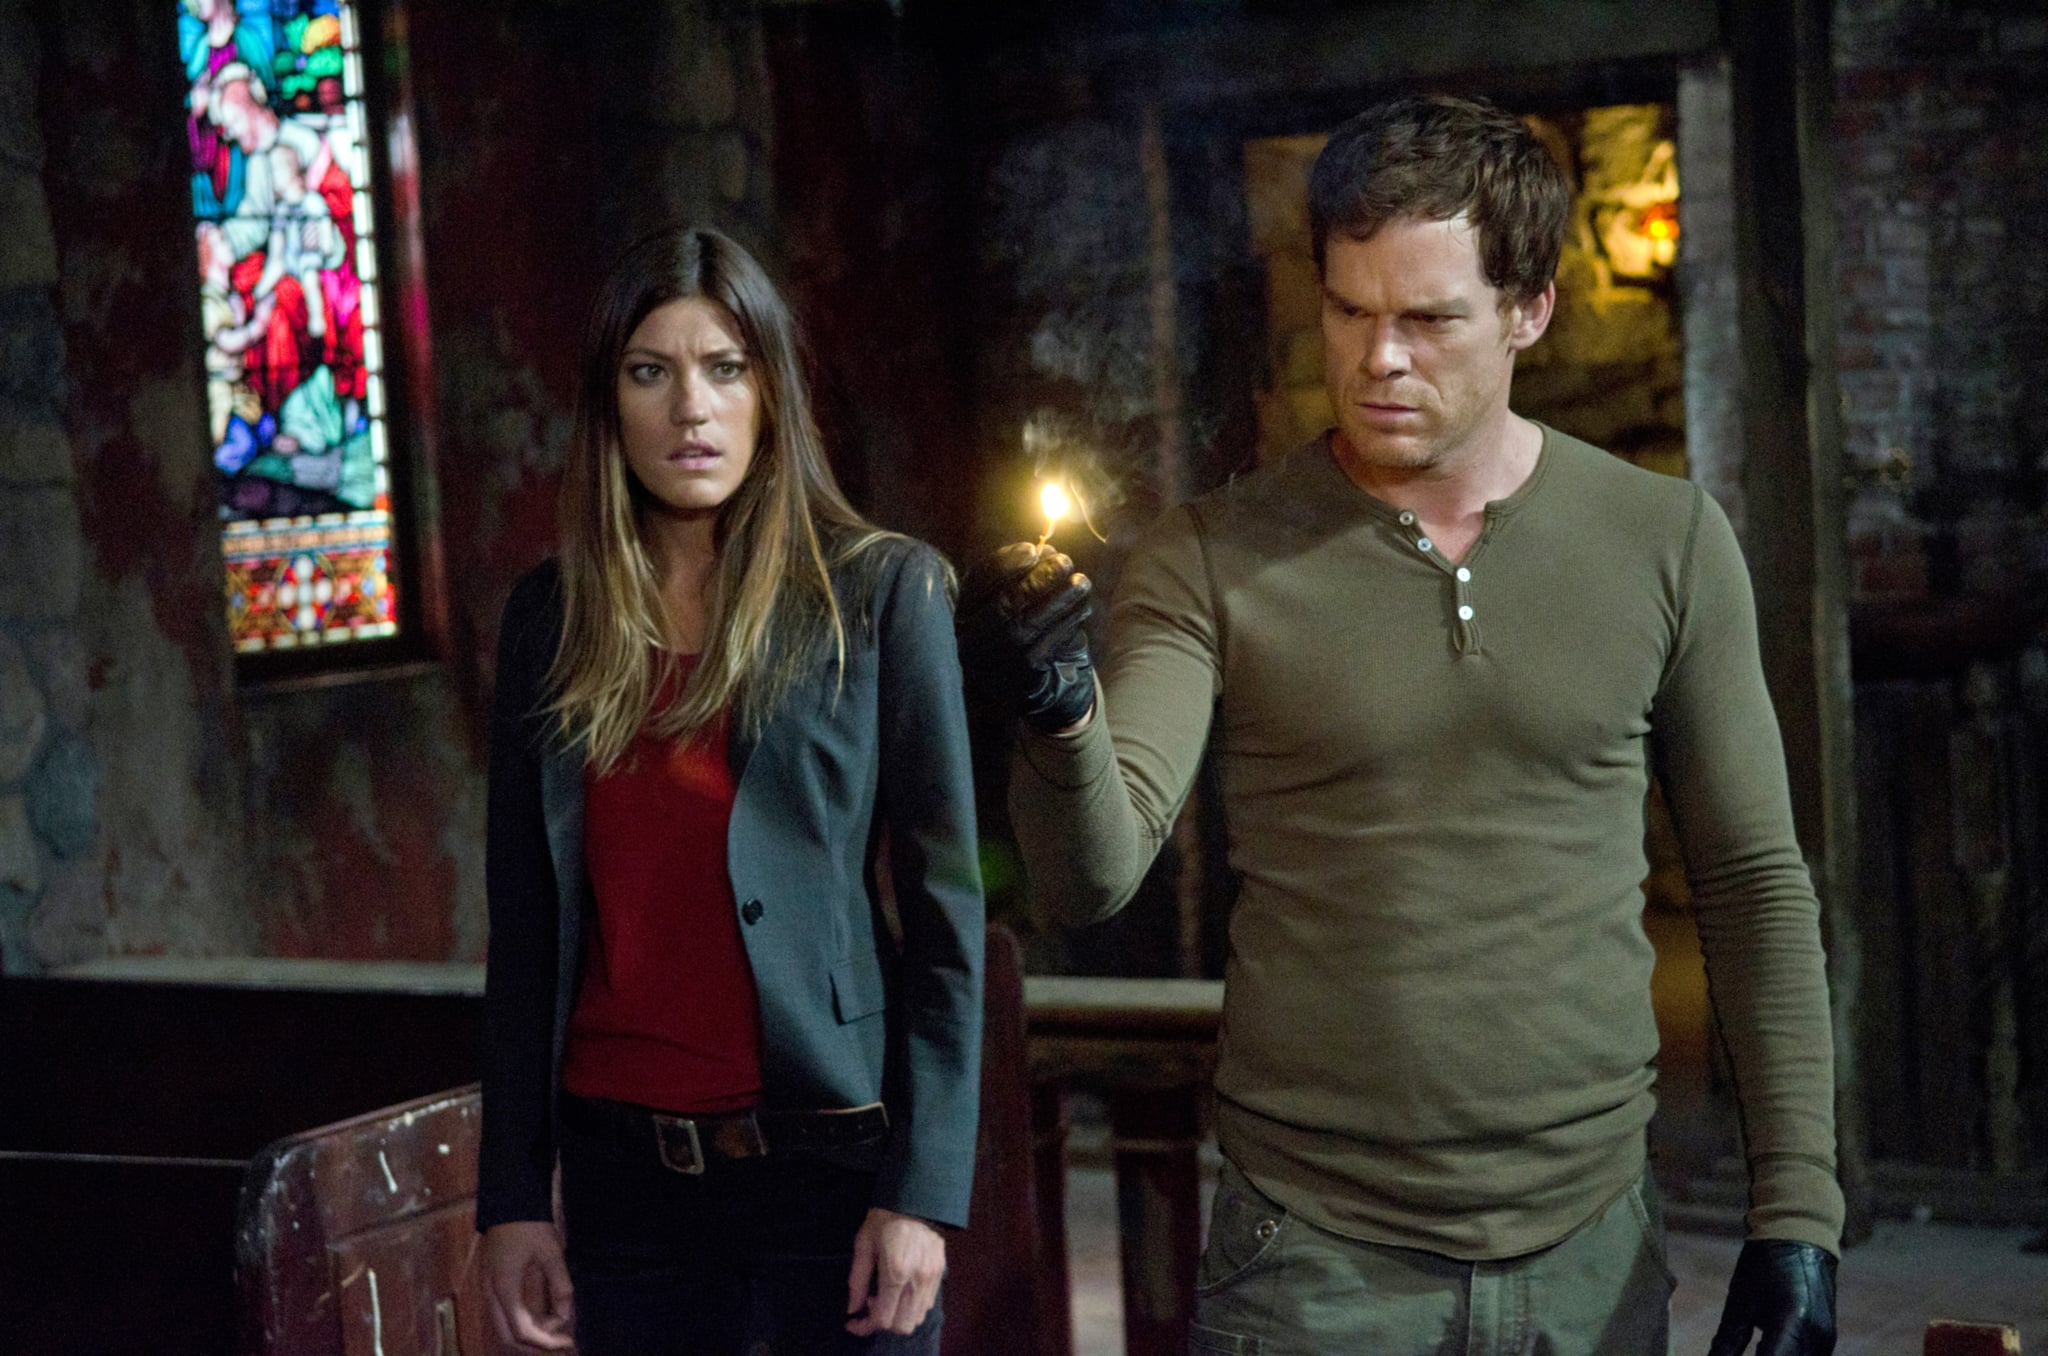 DEXTER, (from left): Jennifer Carpenter, Michael C. Hall, 'Are You...?', (Season 7, ep. 701, airs Sept. 30, 2012), 2006-2013. photo: Randy Tepper /  Showtime / Courtesy Everett Collection